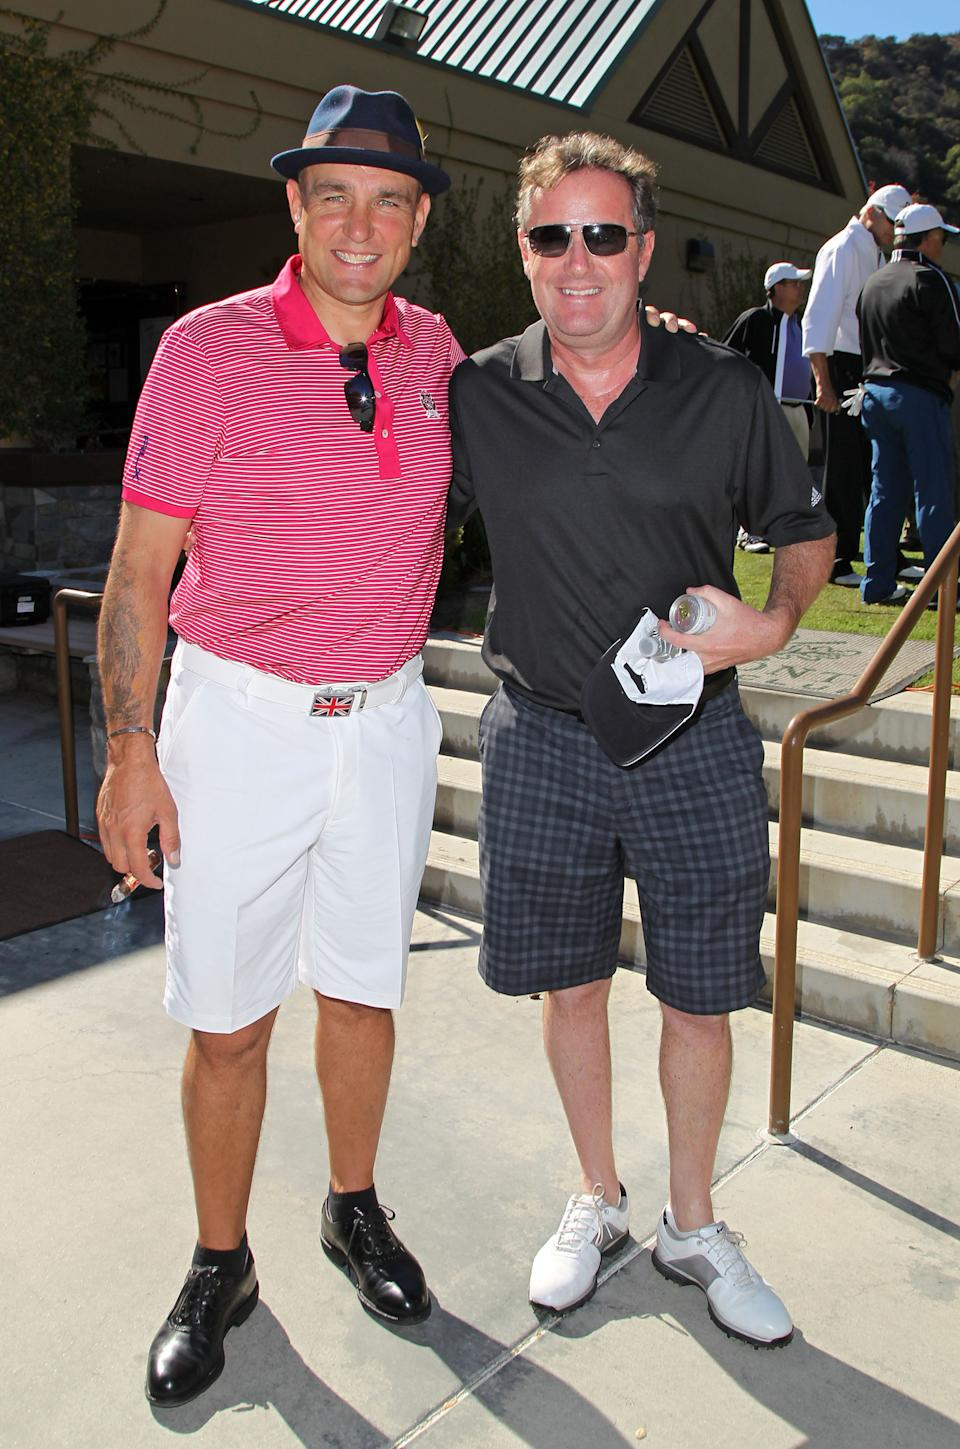 GLENDALE, CA - NOVEMBER 03: Piers Morgan (R) and Vinnie Jones attend the BAFTA LA Celebrity Golf Classic at Oakmont Country Club on November 3, 2014 in Glendale, California.  (Photo by David Buchan/Getty Images for BAFTA LA)